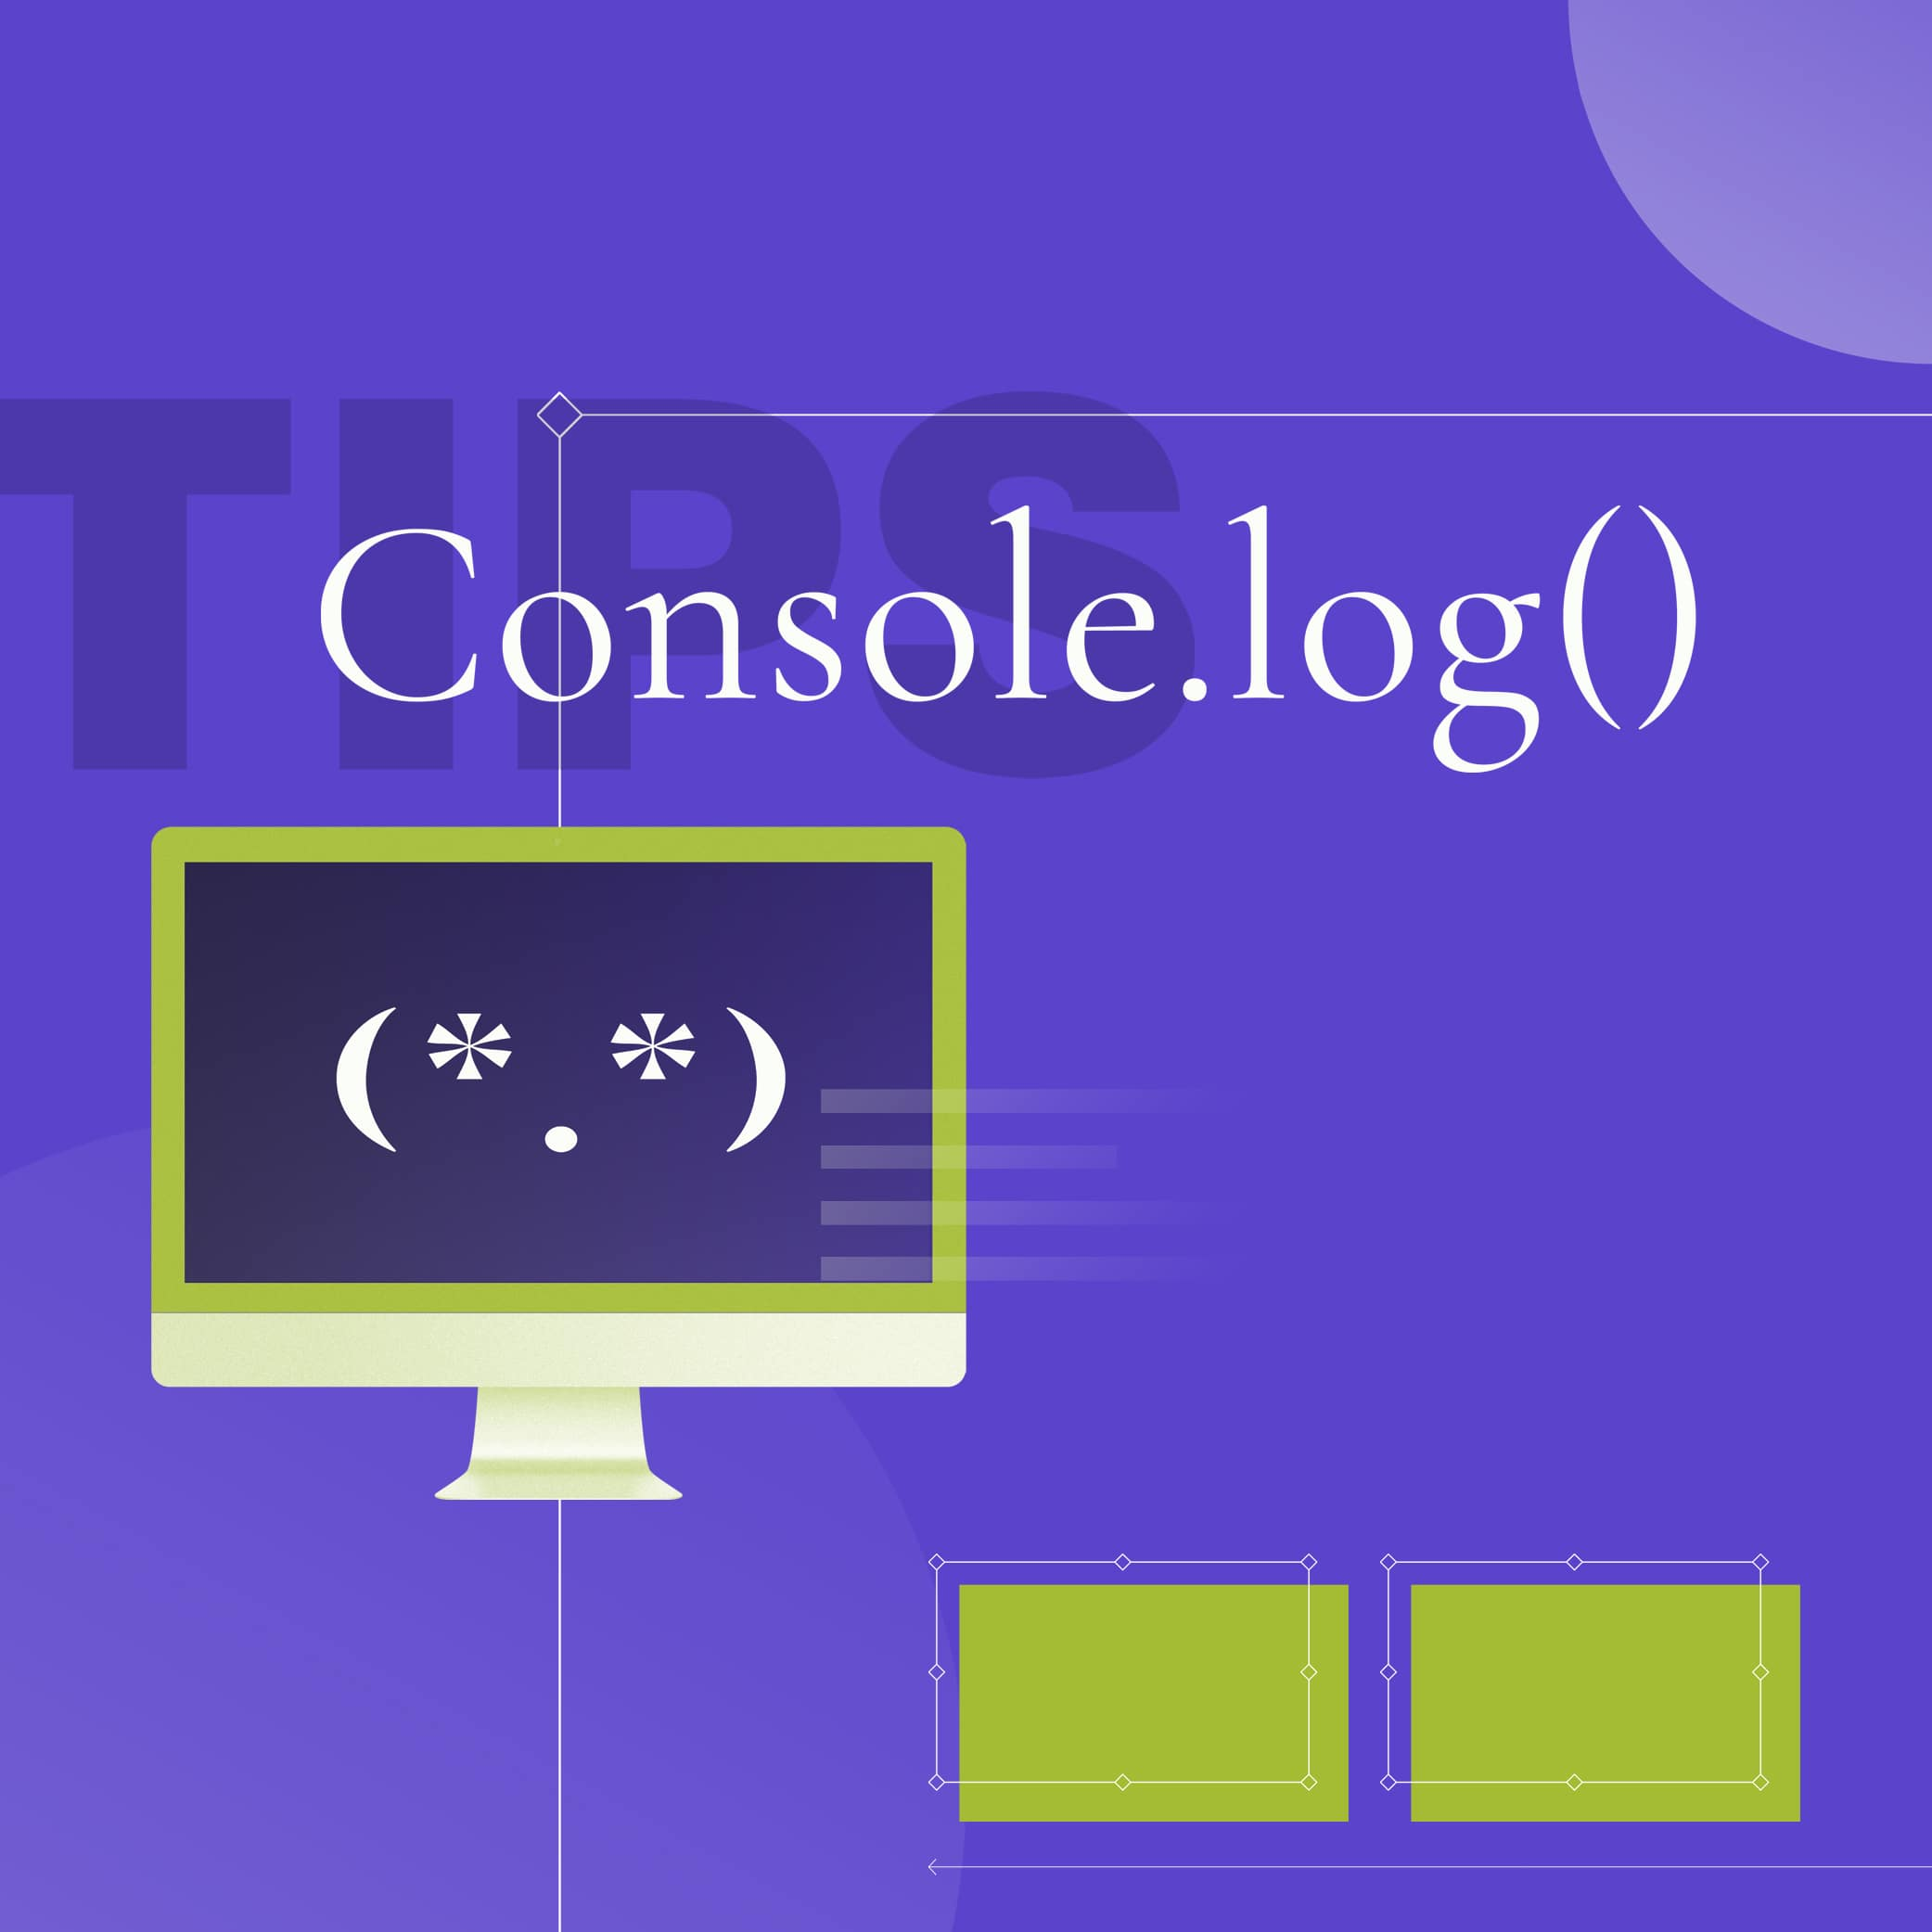 54922Level up your JavaScript browser logs with these console.log() tips